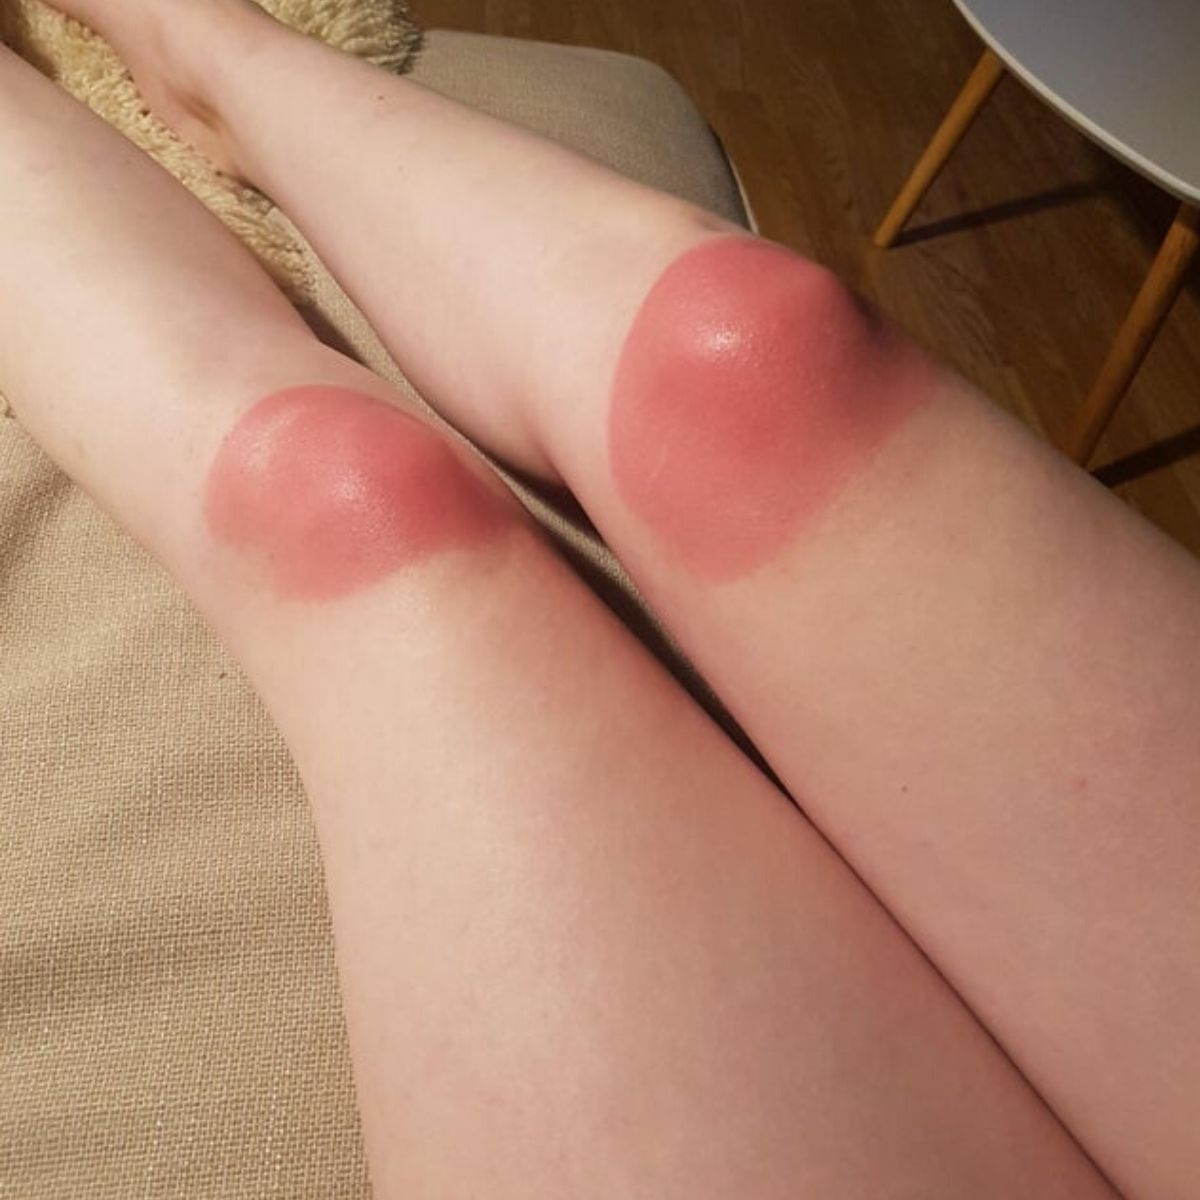 knee burn from ripped jeans